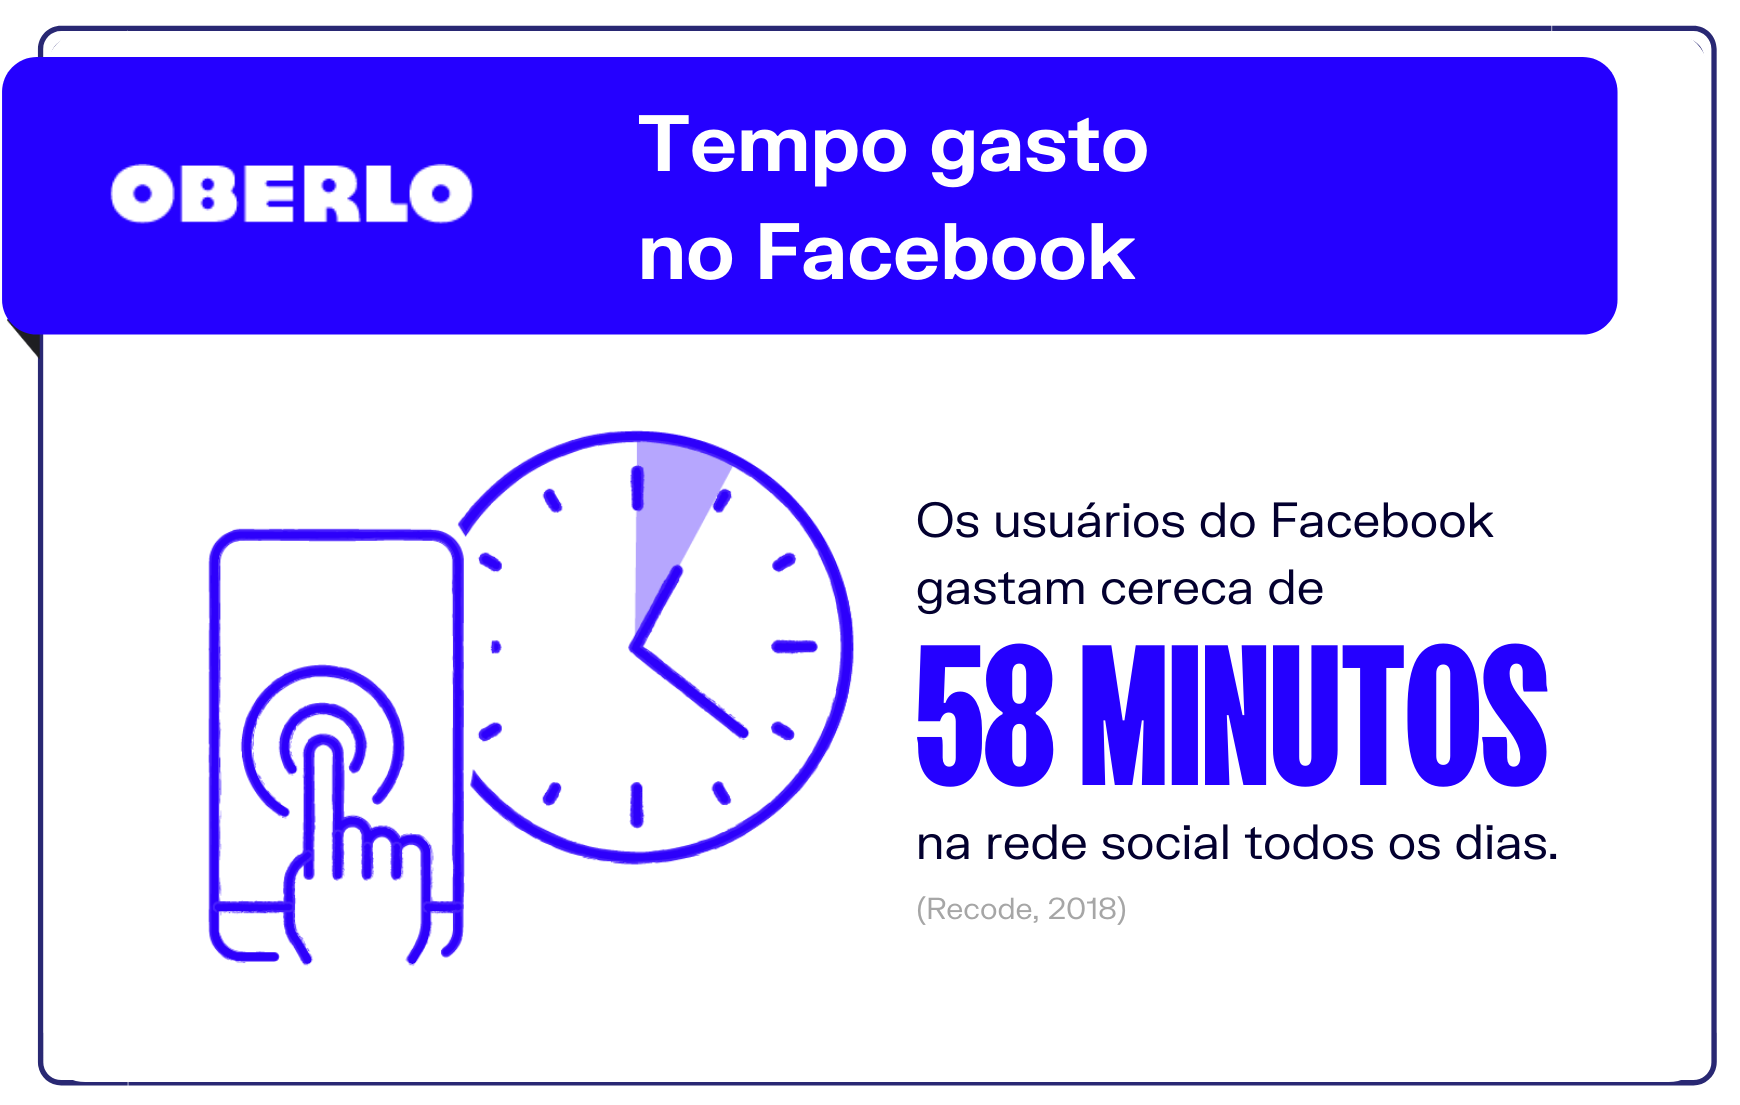 Dados Facebook: Tempo gasto no Facebook